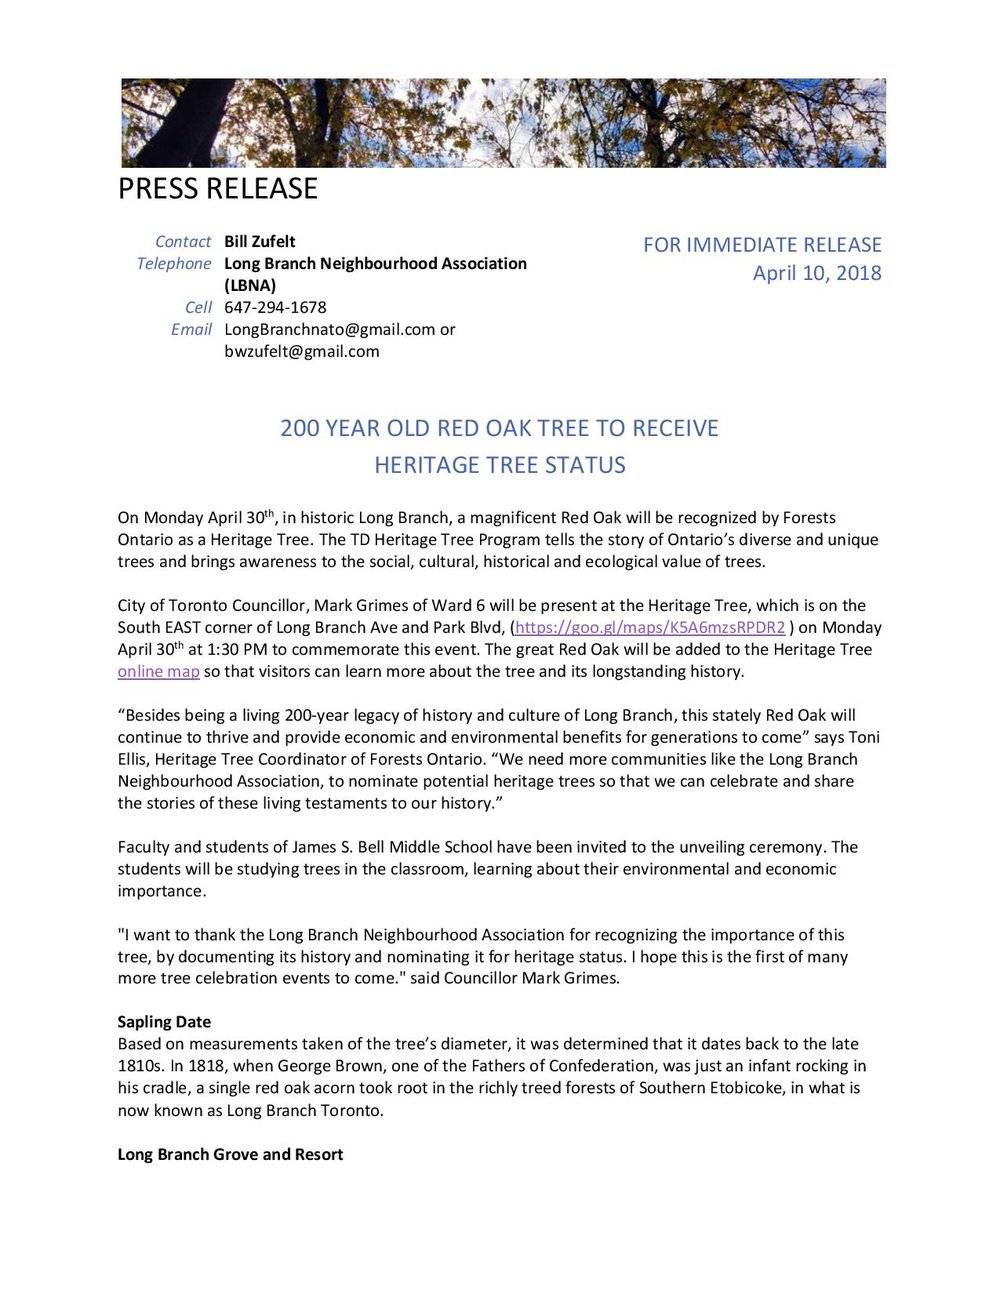 Heritage Tree final Press   Release_edits-page-001.jpg